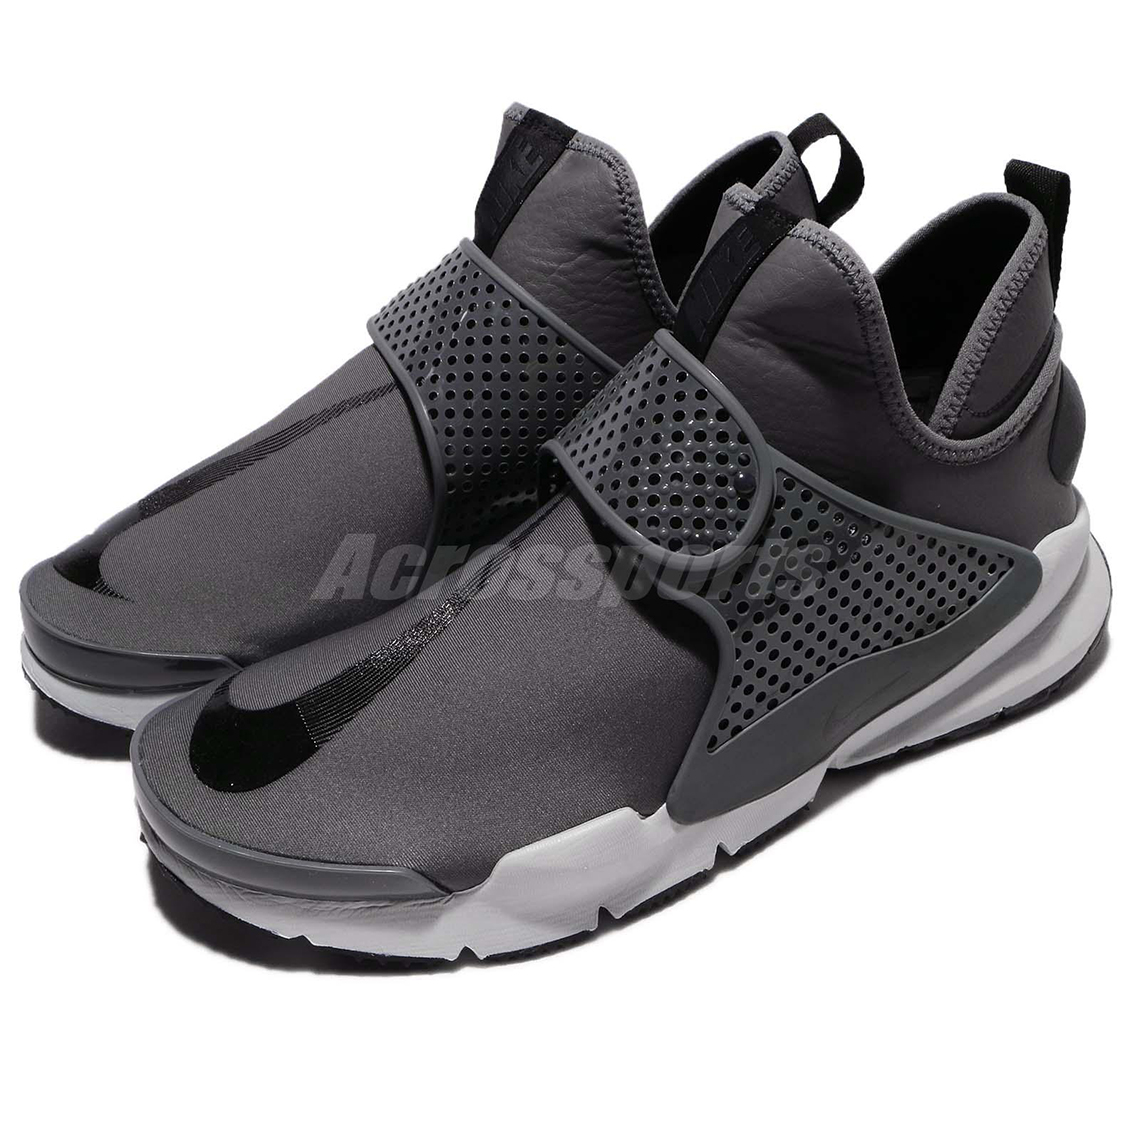 best service 48aad 4f774 Nike Sock Dart Mid Dark Grey Anthracite 924454-003 Available ...